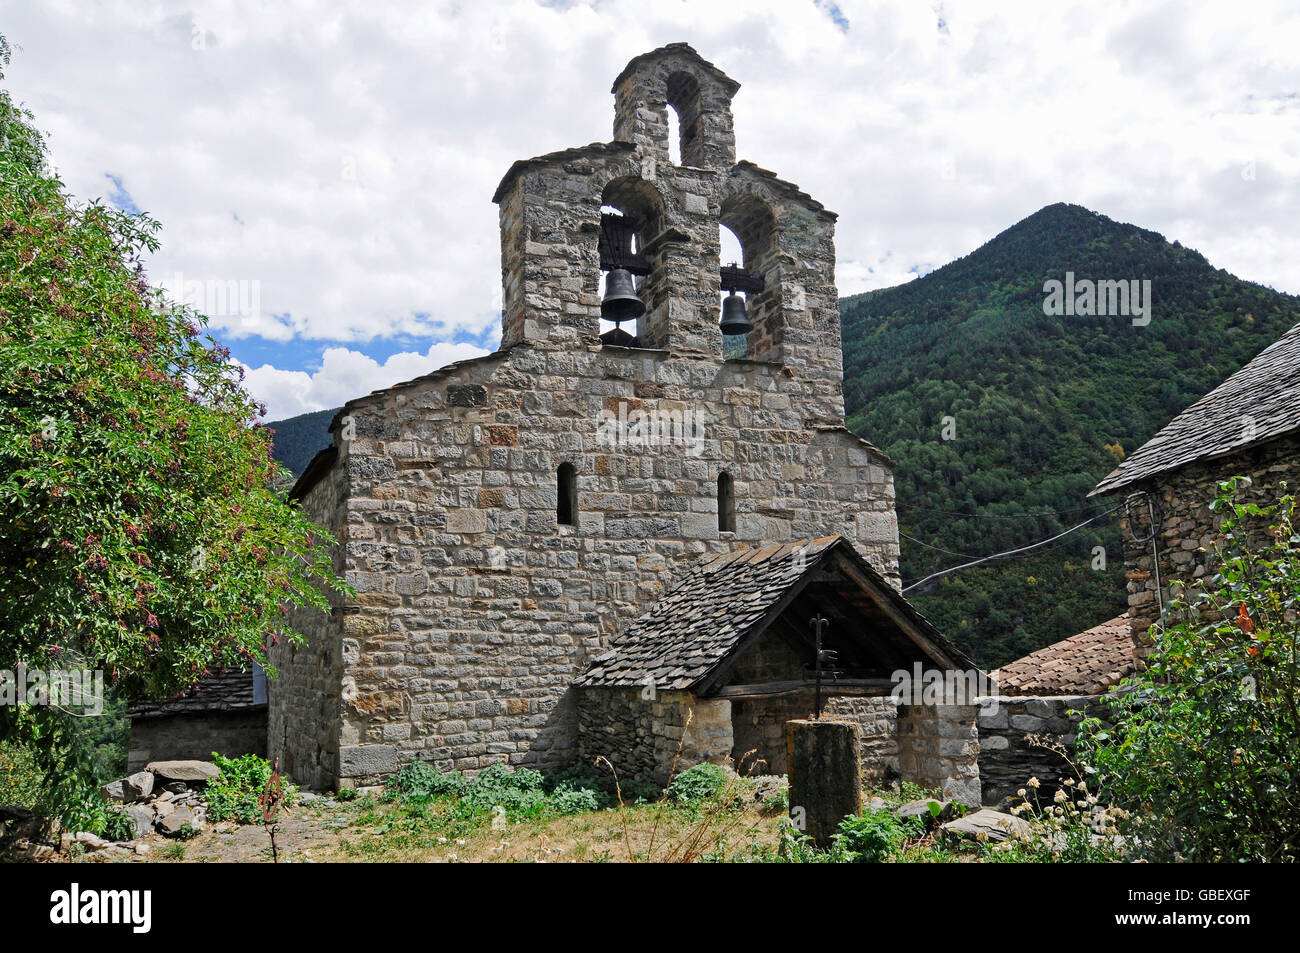 Santa Maria, romanesque church, Cardet, La Vall de Boi valley, Pyrenees, province LLeida, Catalonia, Spain - Stock Image